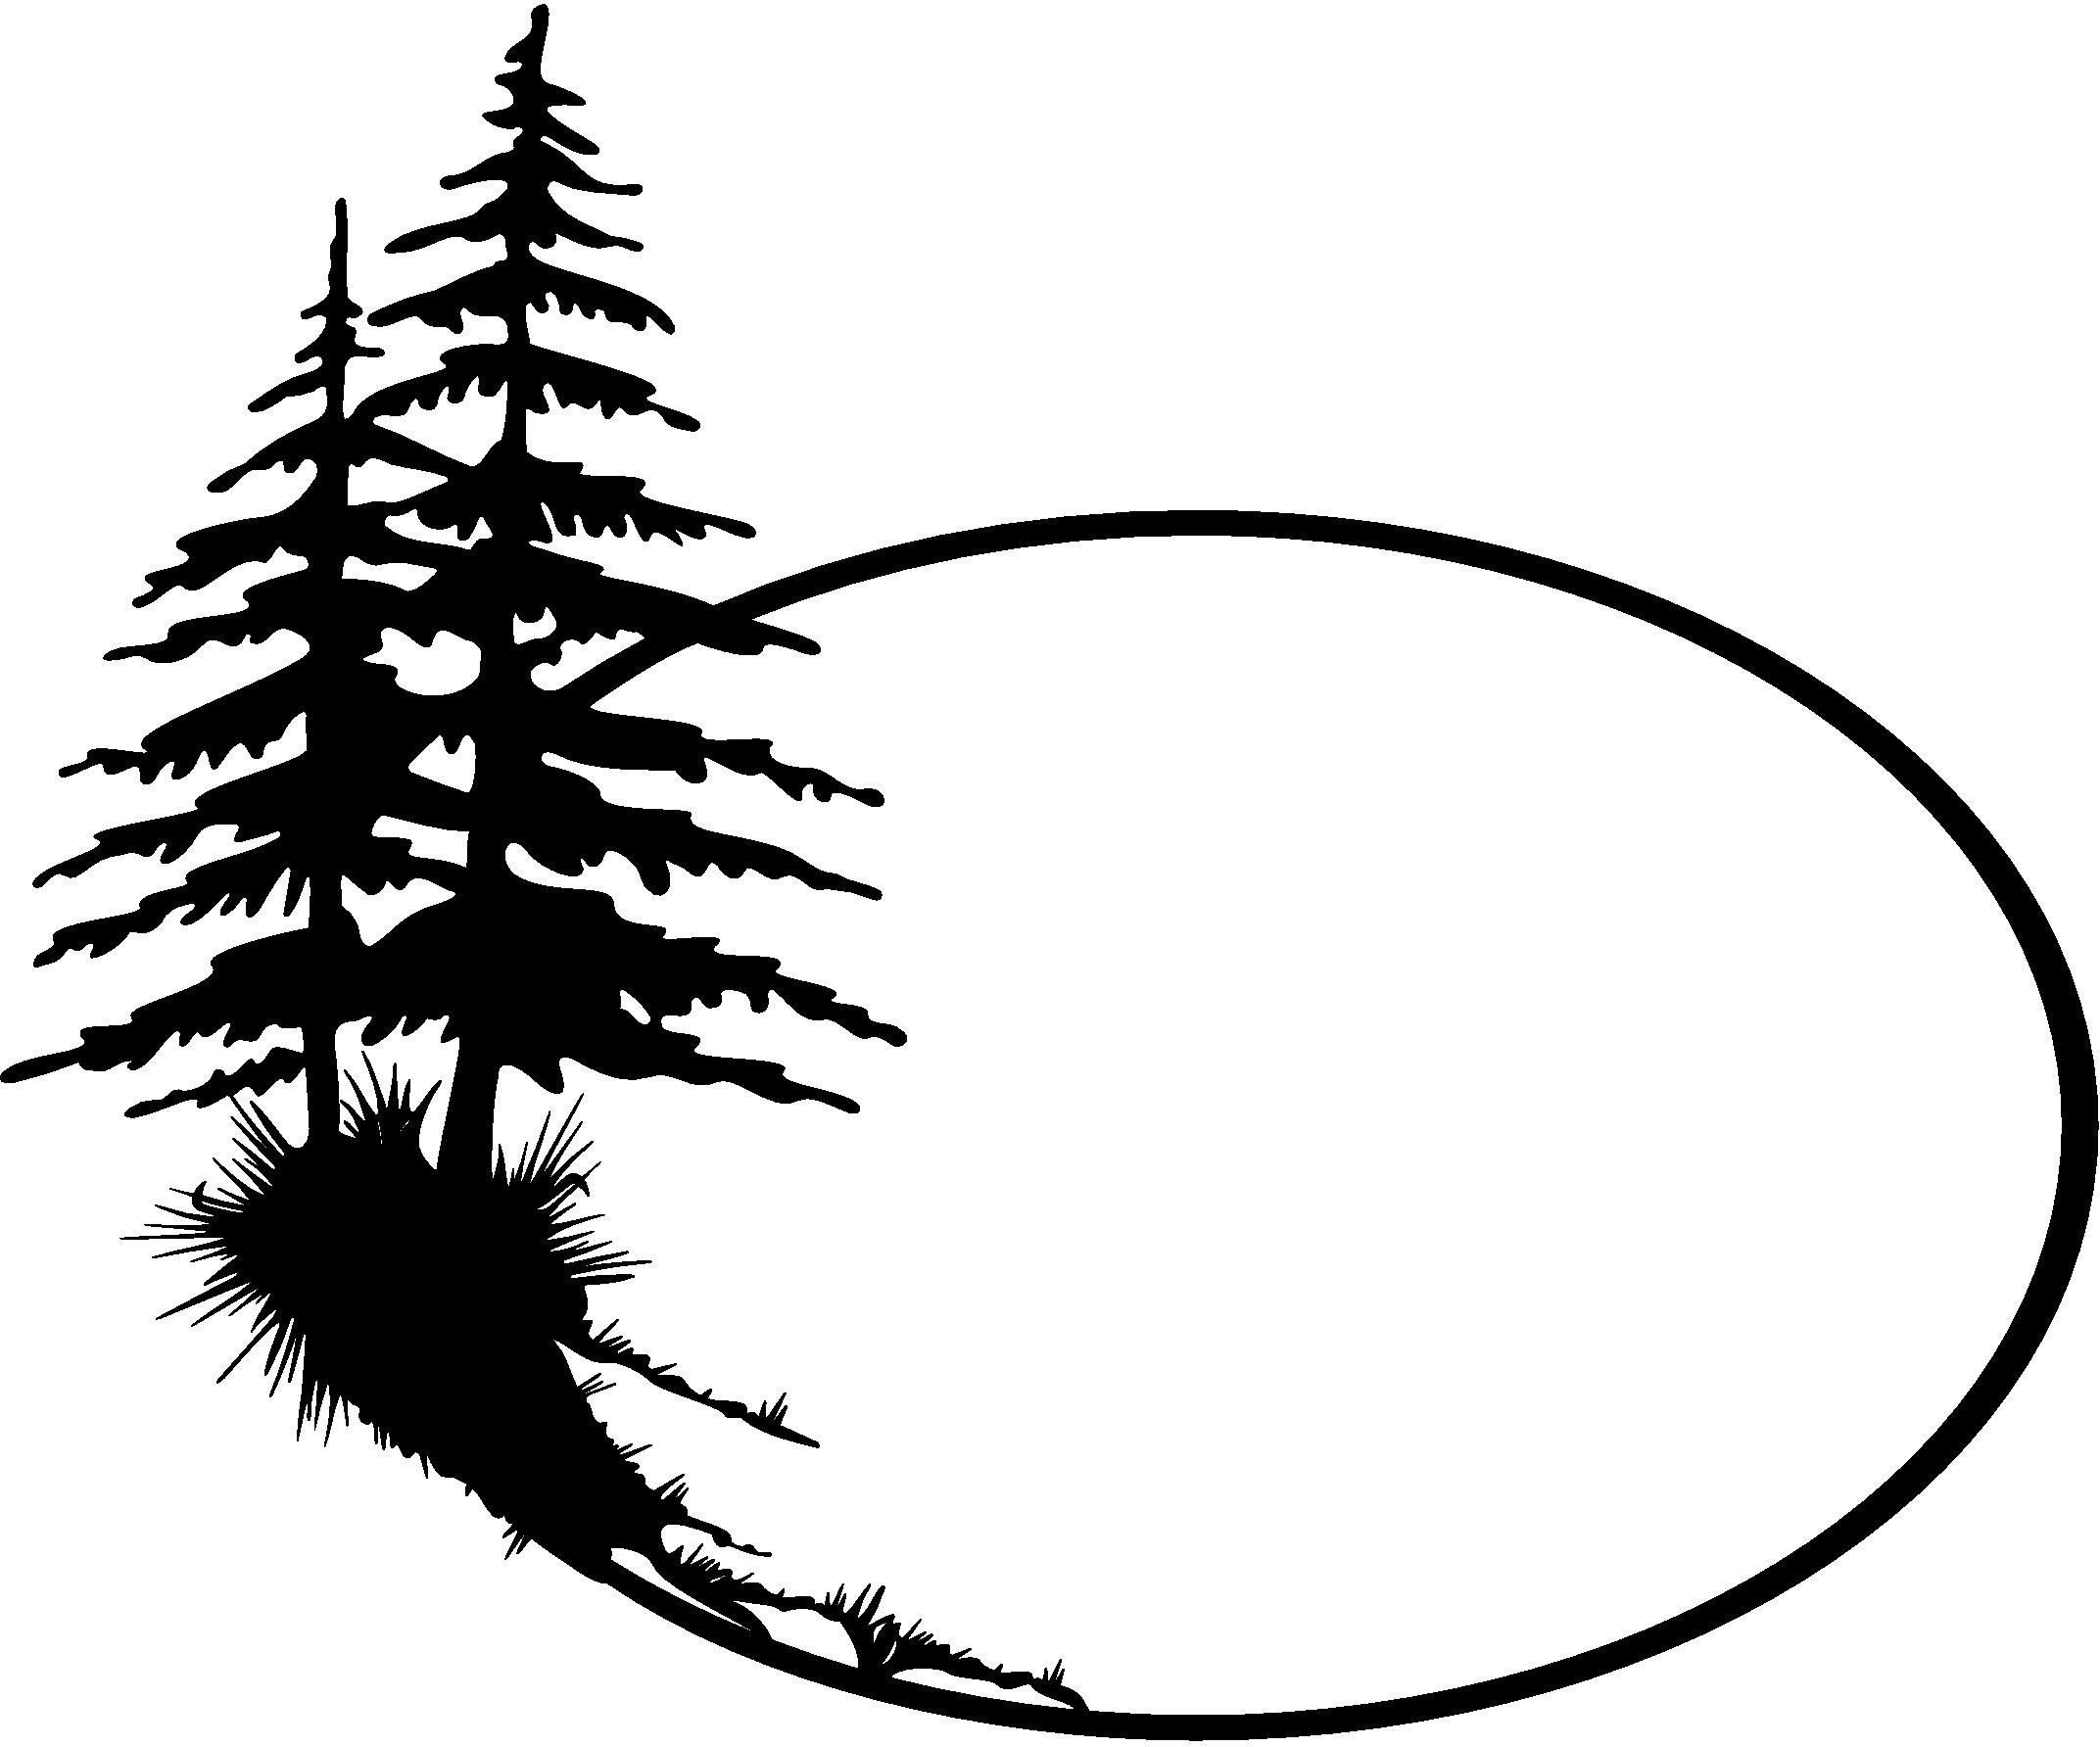 Silhouette clip art silhouettes. 2 clipart pine tree